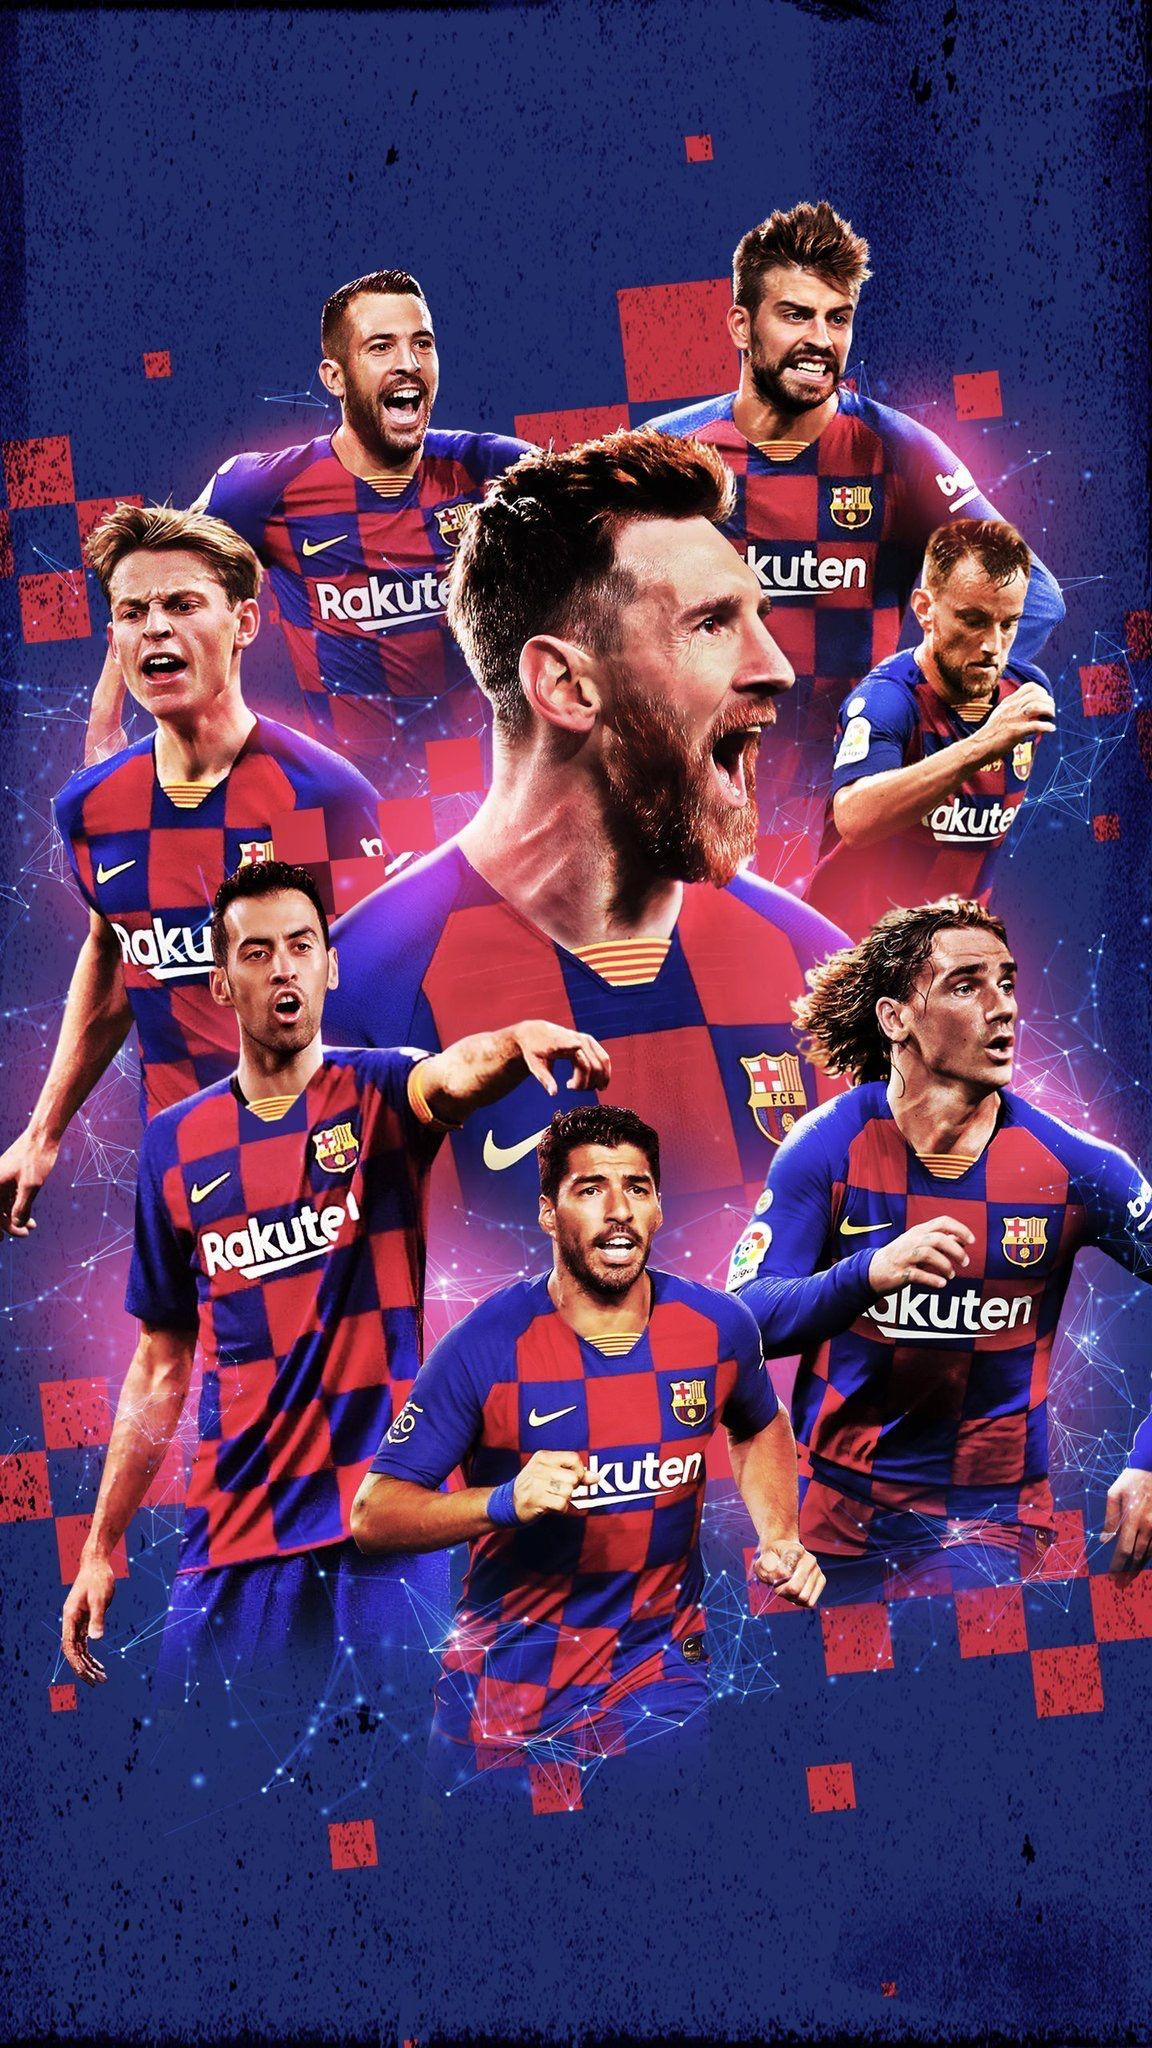 fc barcelona 2020 wallpapers wallpaper cave fc barcelona 2020 wallpapers